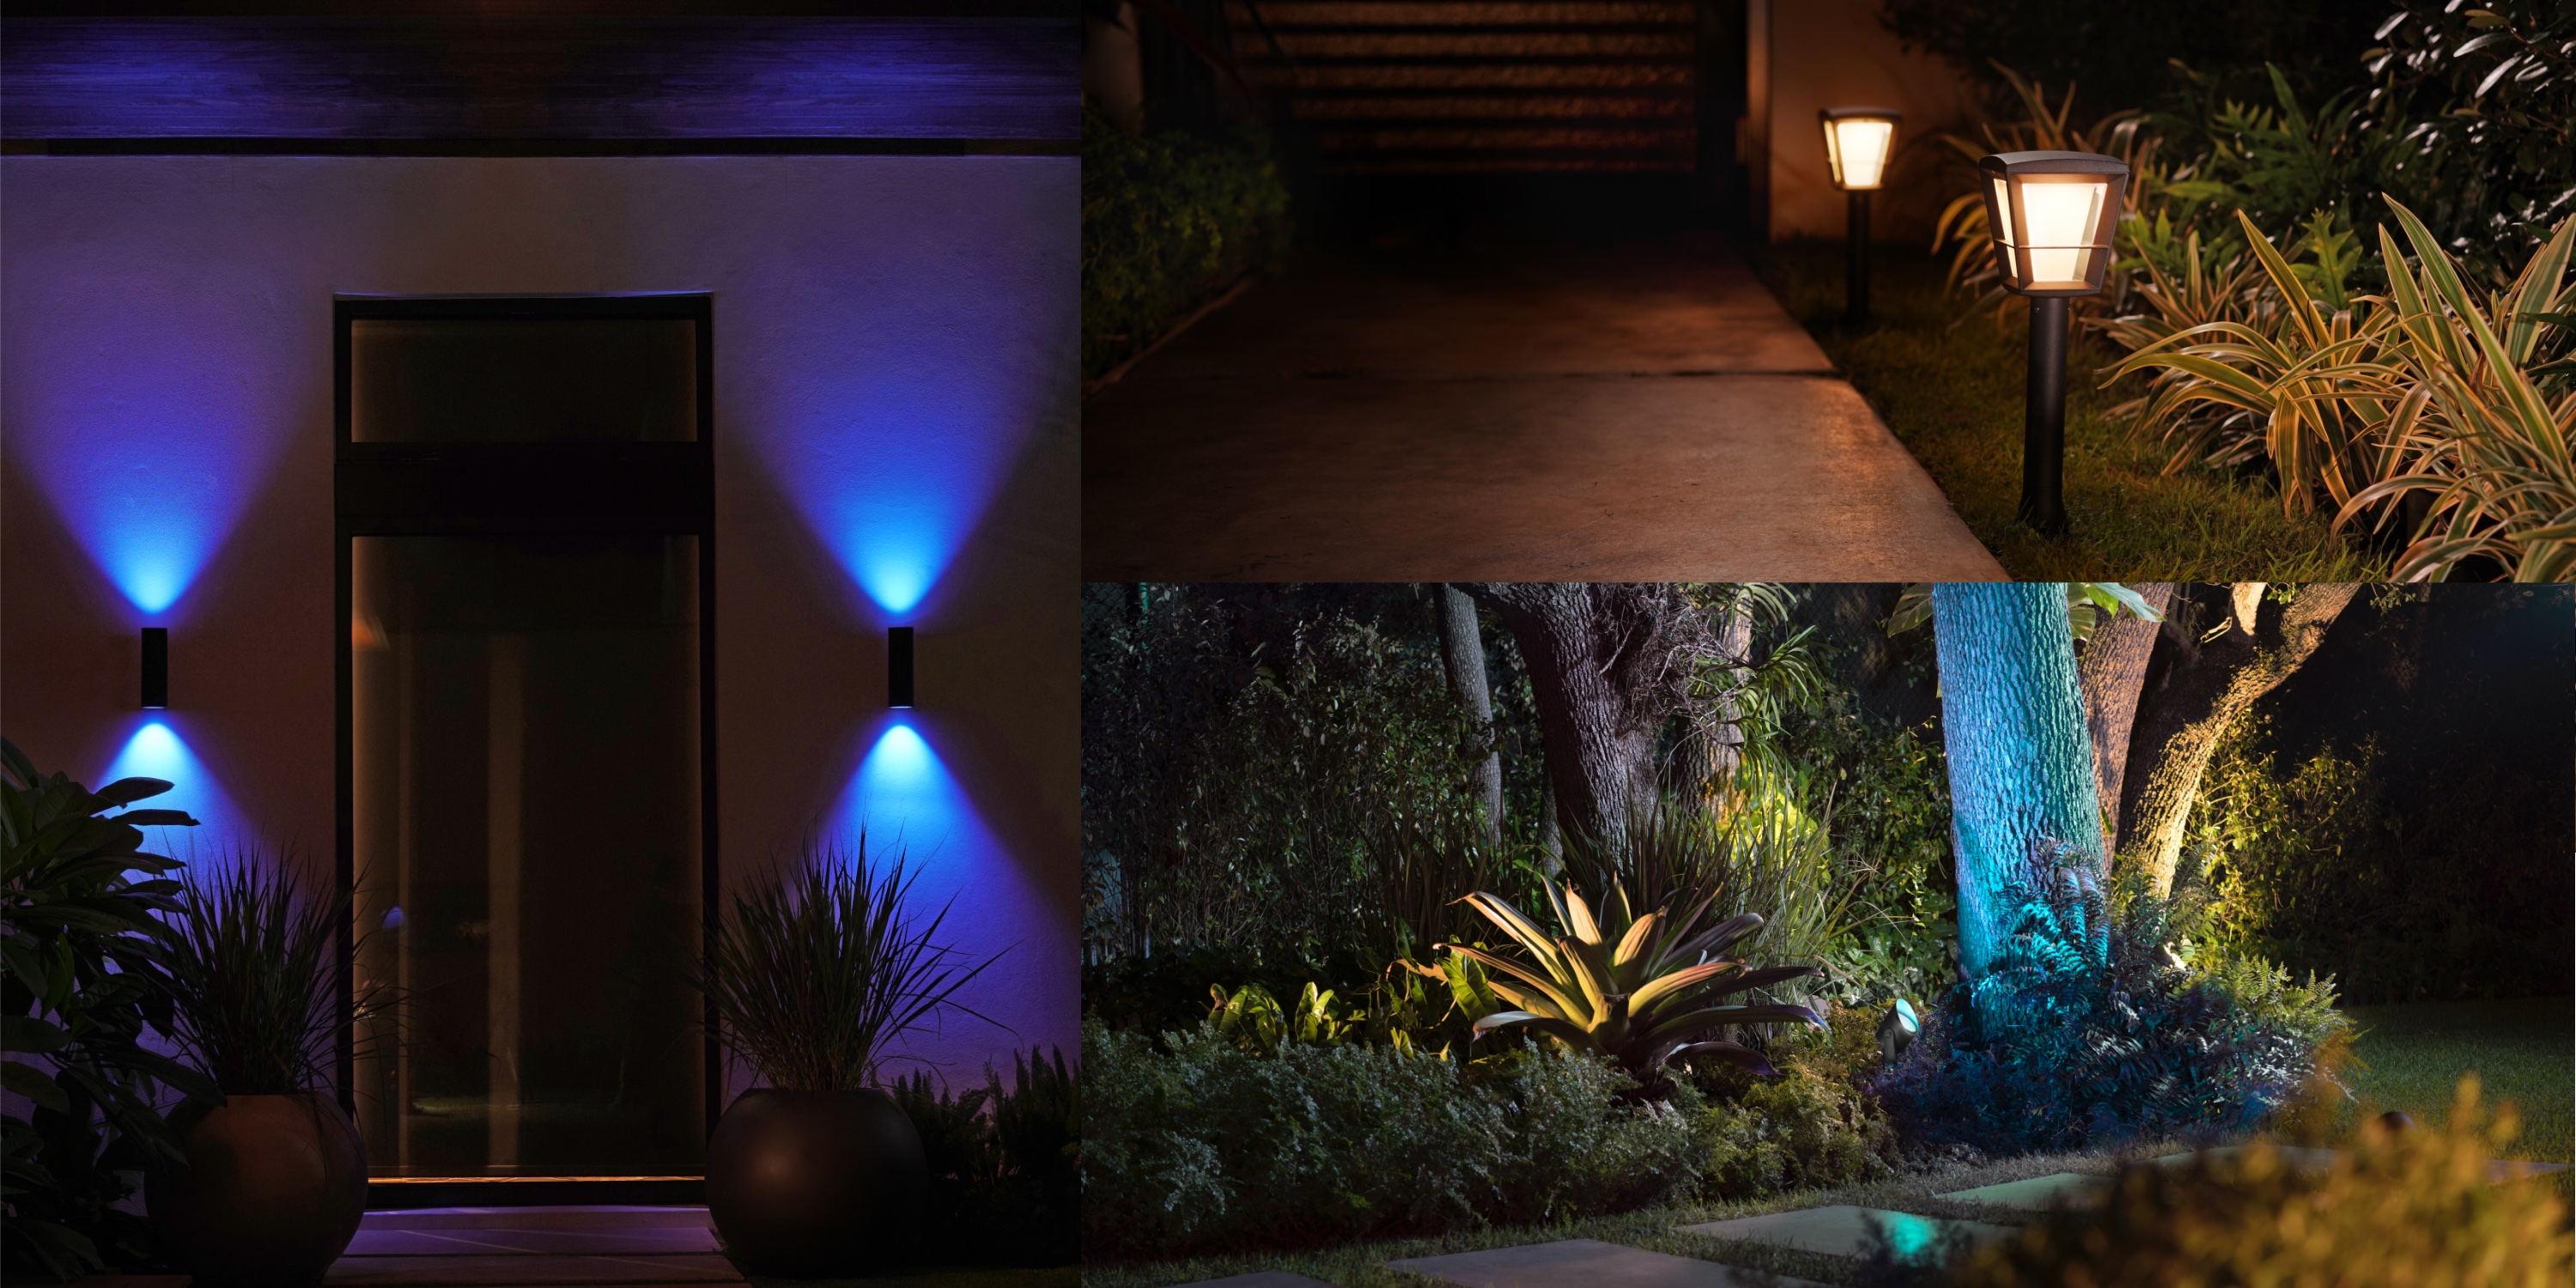 Philips Hue Expands Outdoor Options